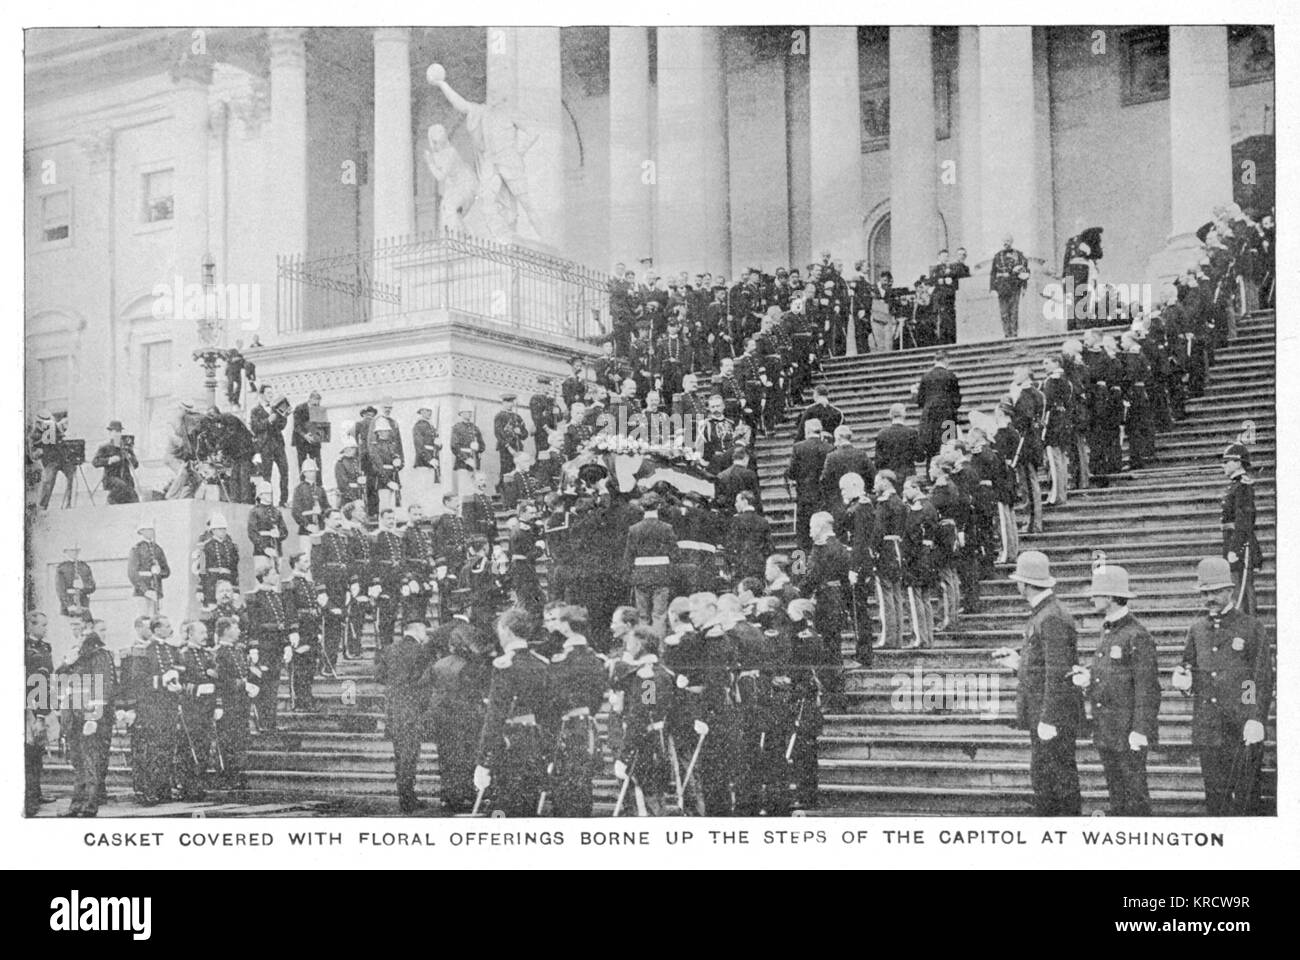 WILLIAM MCKINLEY The casket containing the assassinated President is borne up the steps of the Capitol at Washington. - Stock Image